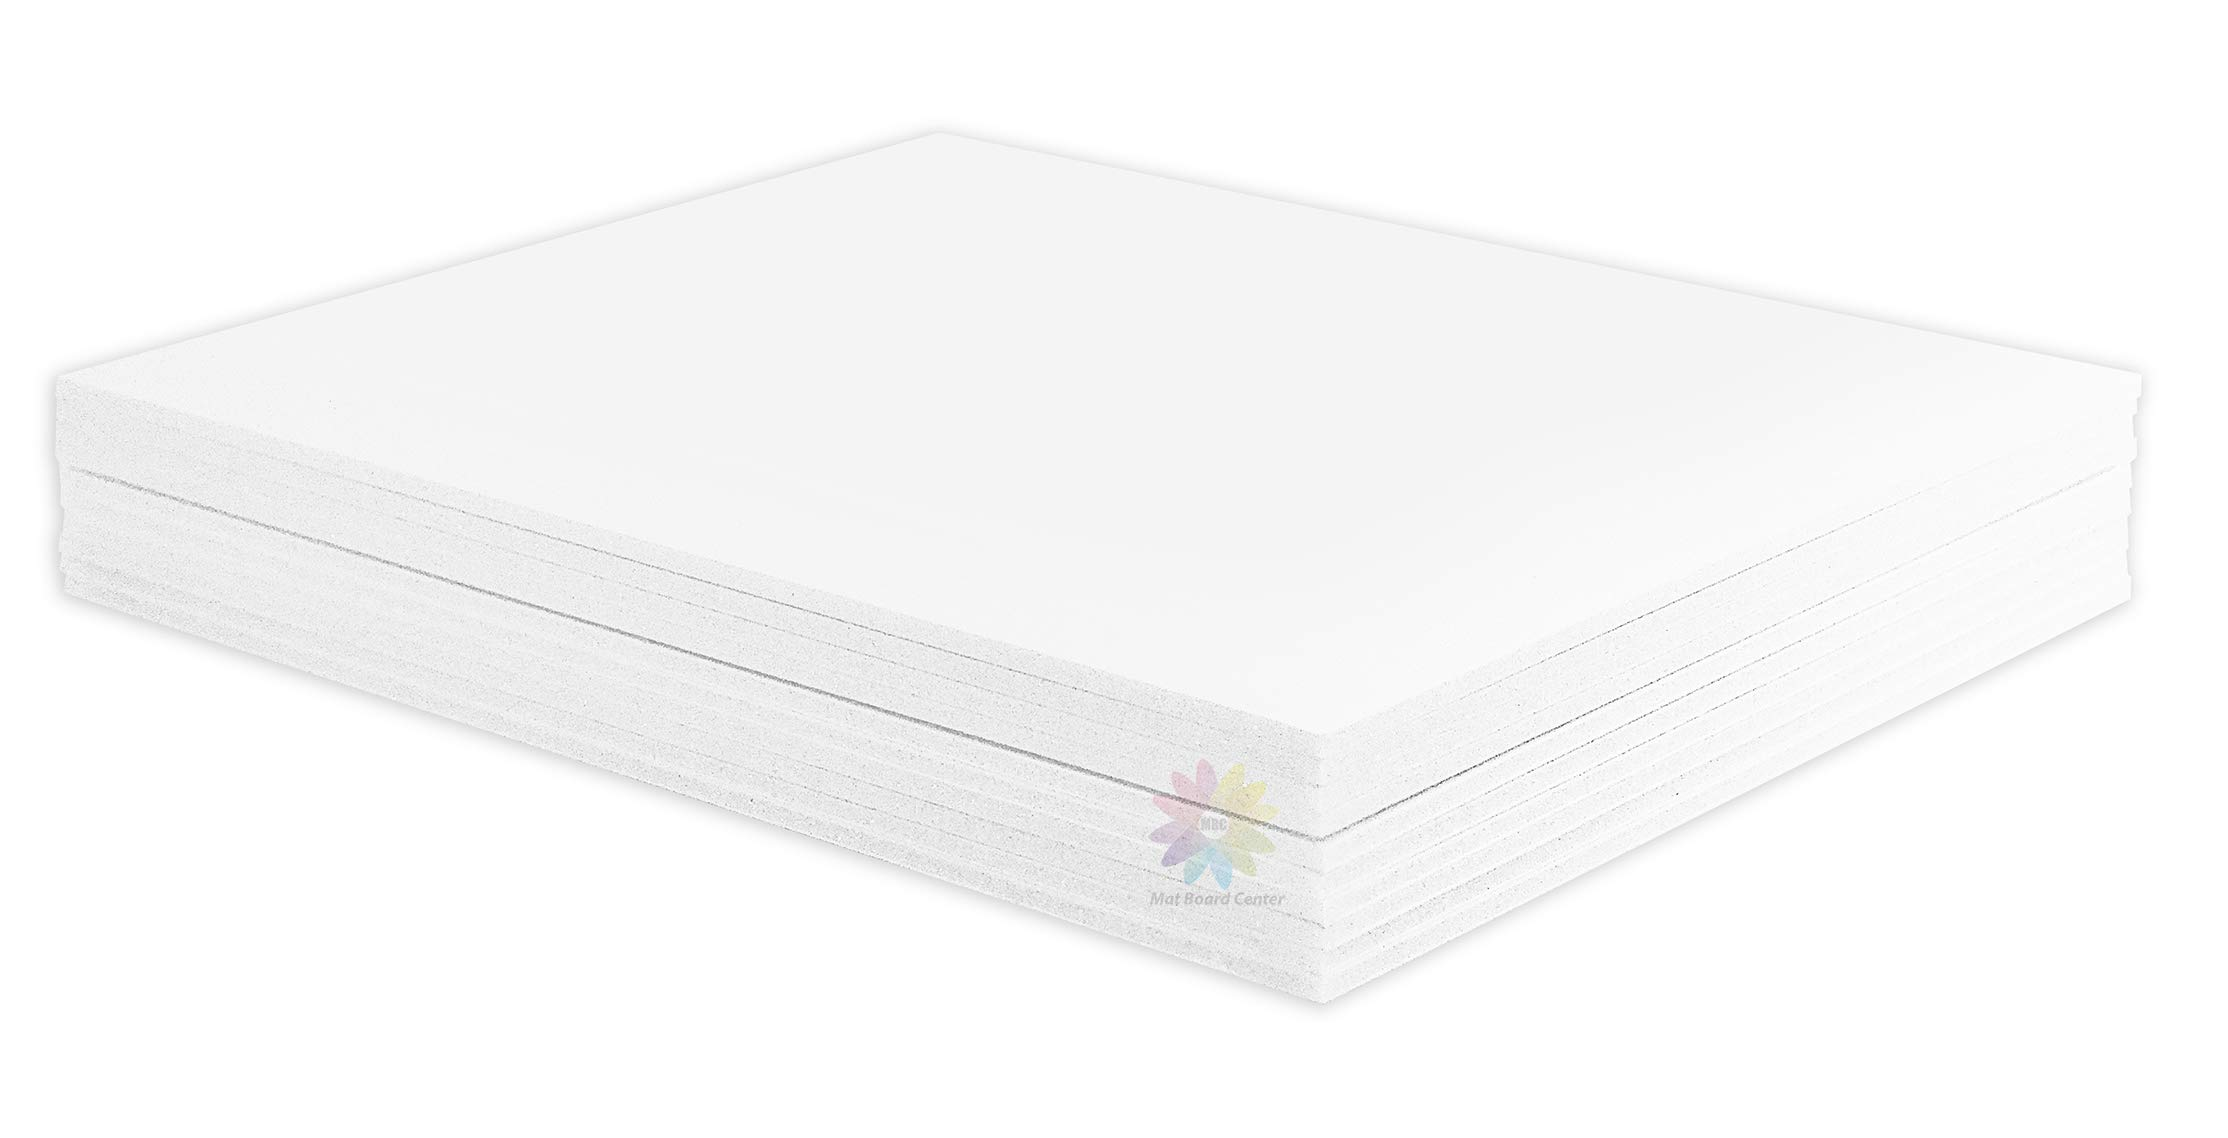 Mat Board Center, Pack of 10 Foam Boards, 11x14 inch (Many Sizes Available) 1/8'' Thick, White Foam Core Backing Boards (Acid-Free) by MBC MAT BOARD CENTER